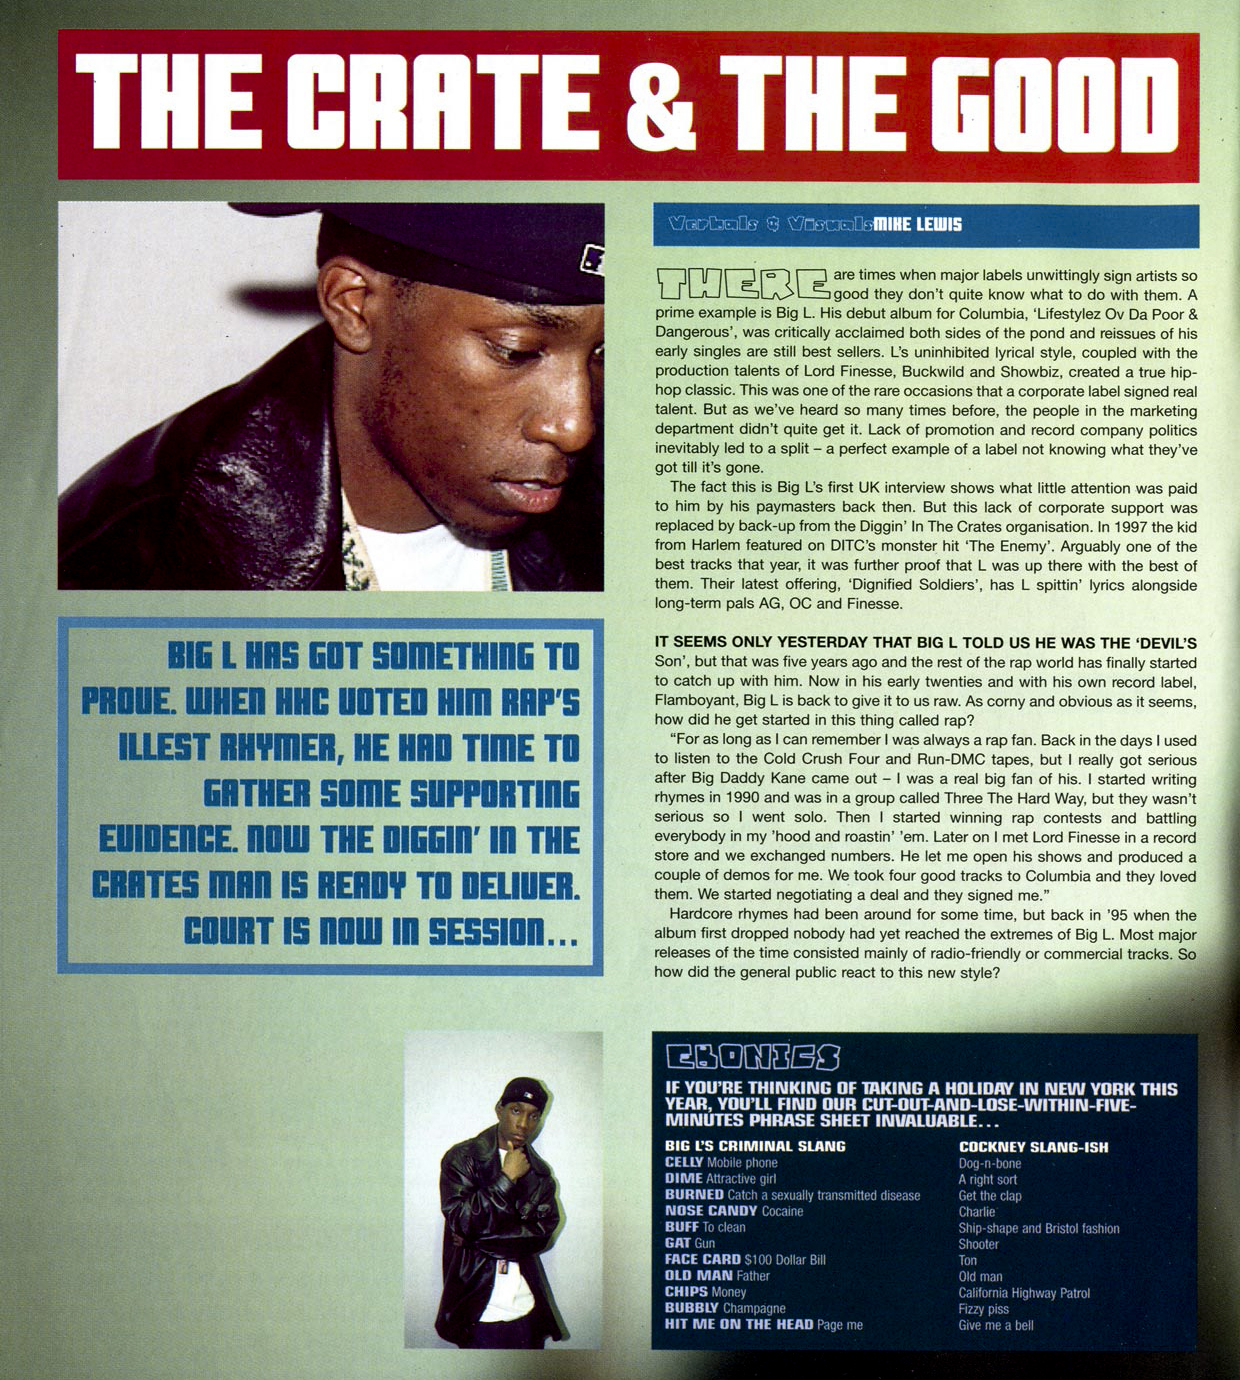 Big L 'The Crate & The Good' (Hip Hop Connection, '98)